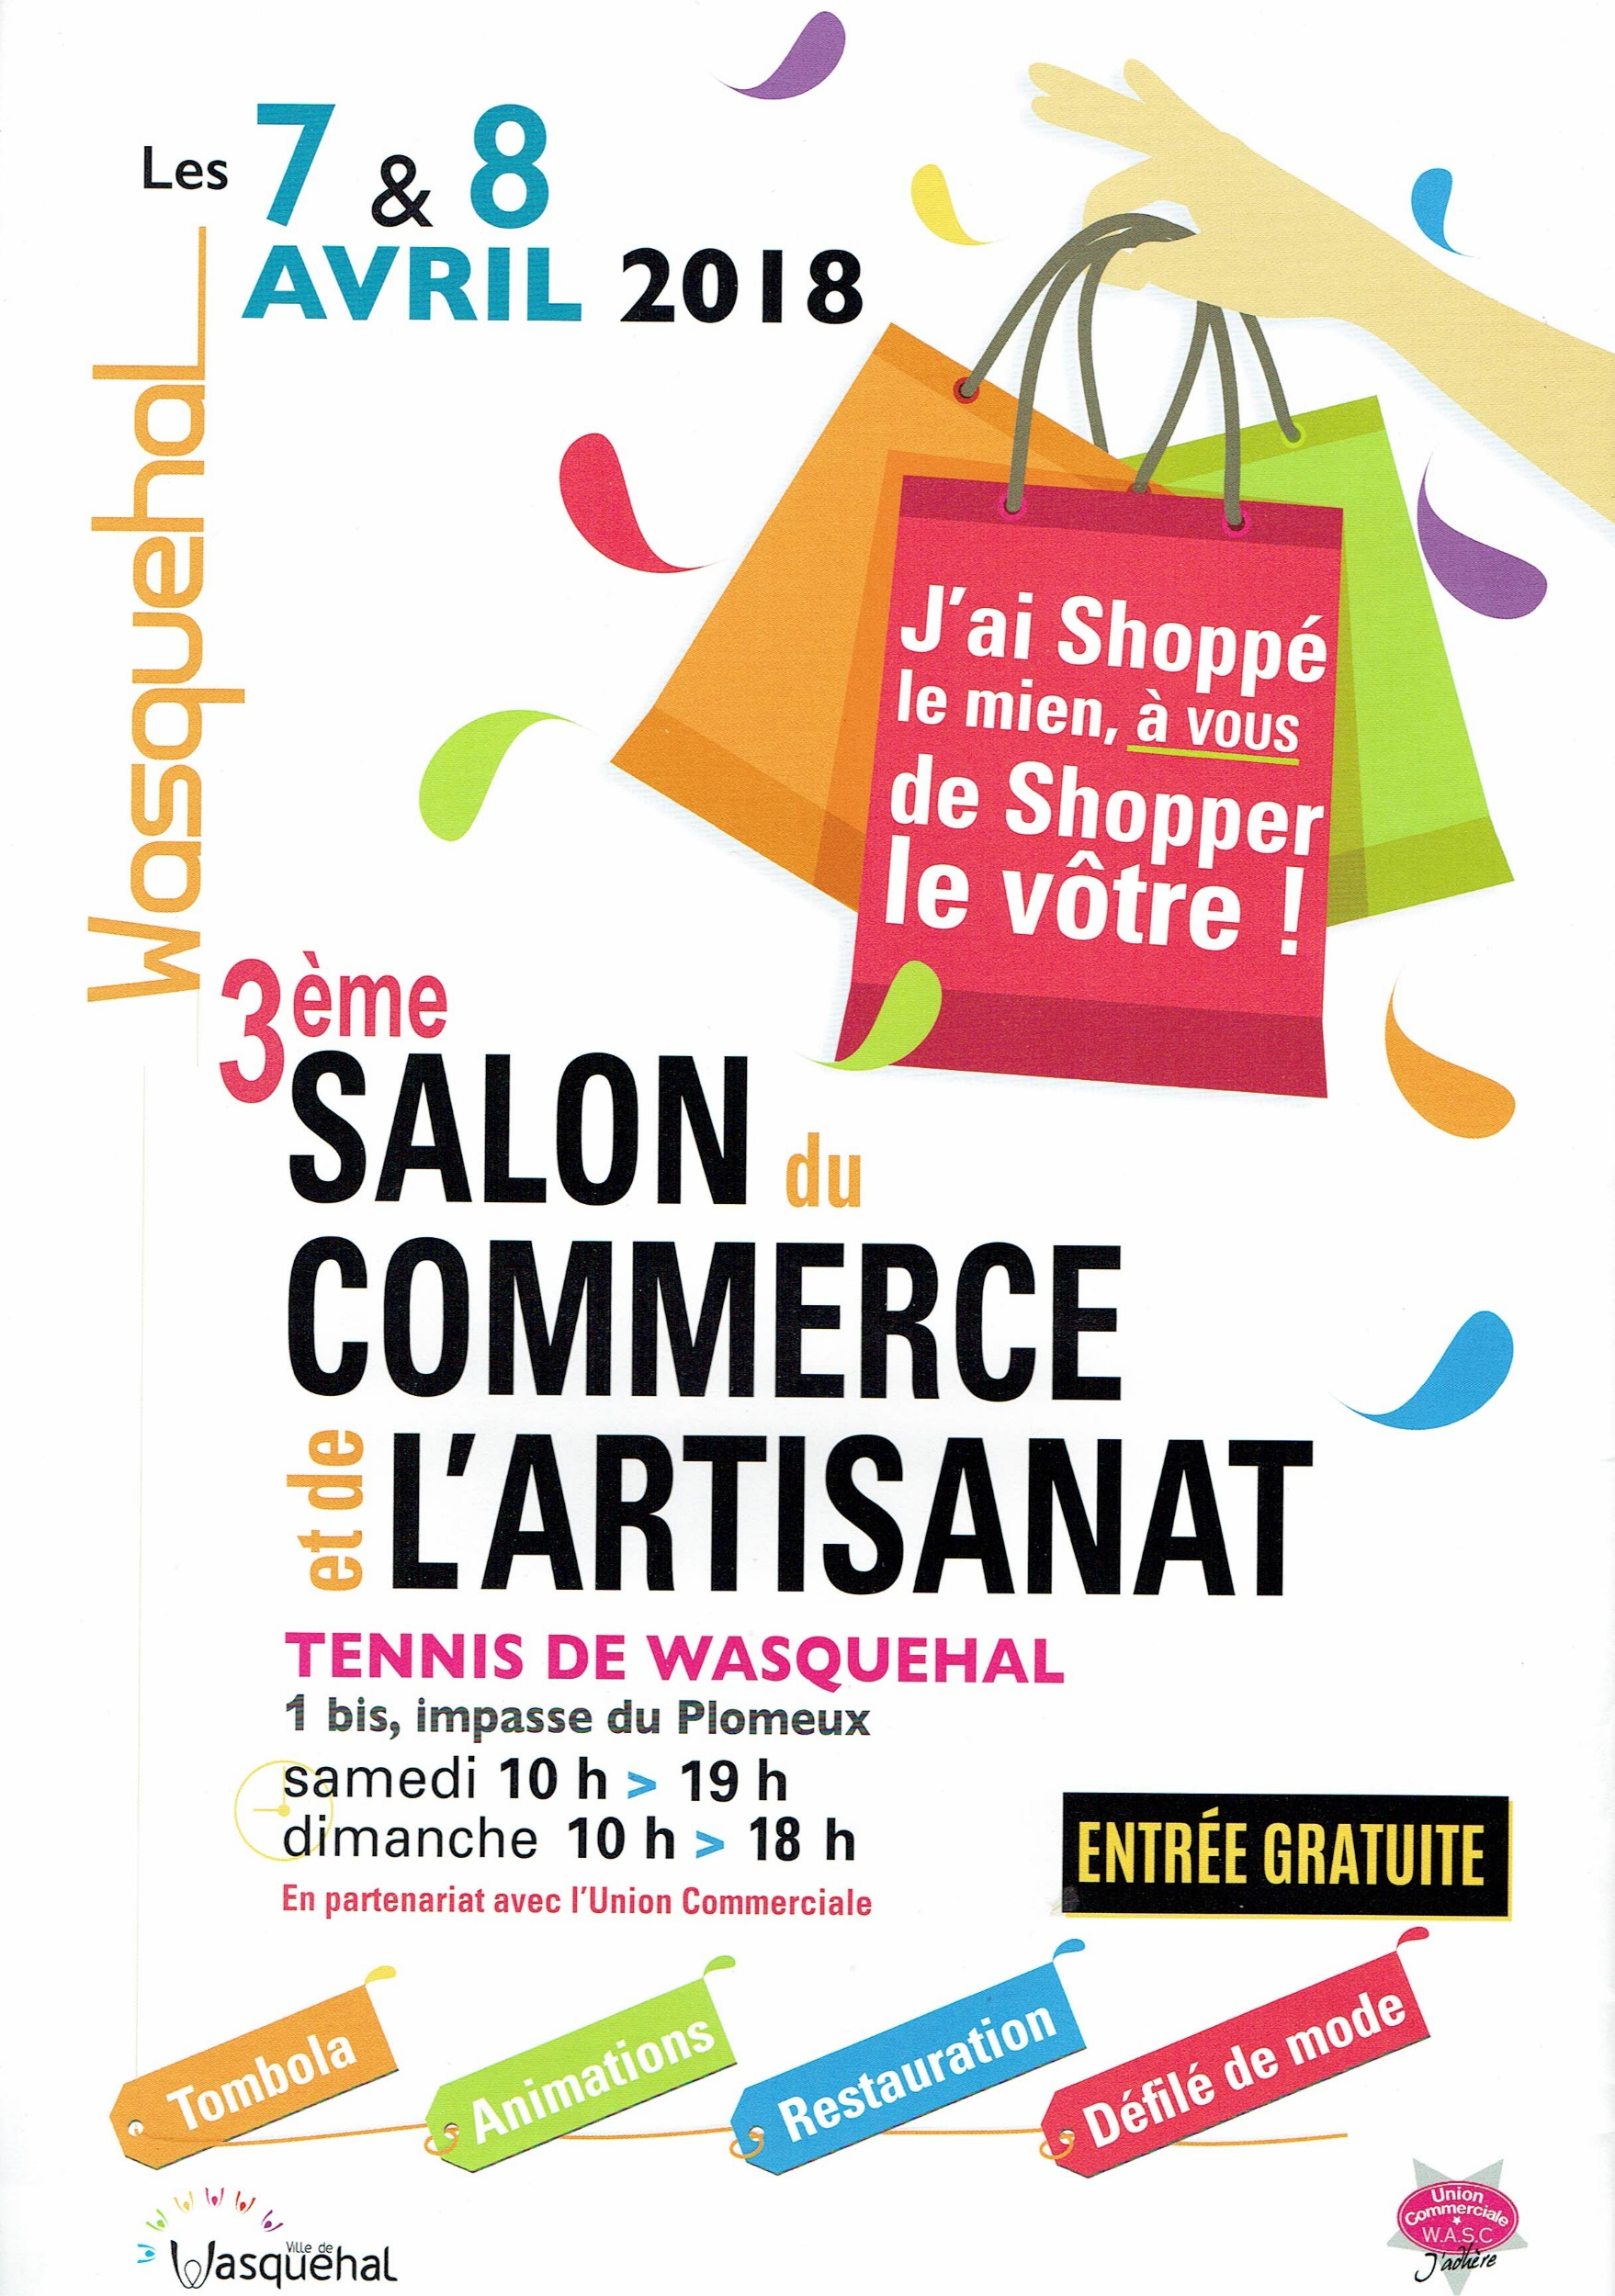 Le salon de ce week-end!